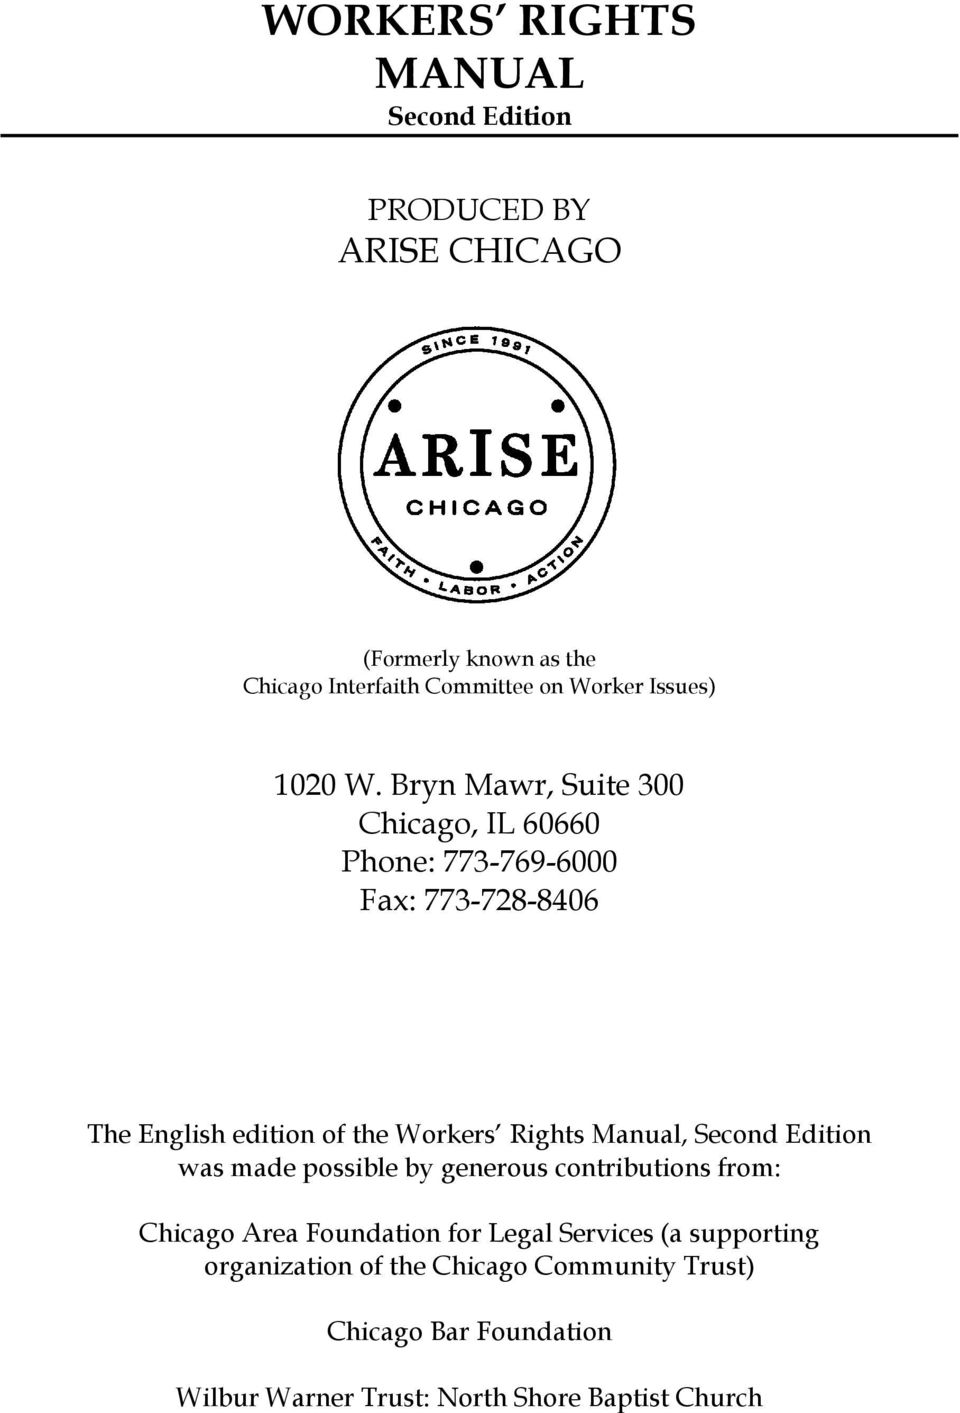 Bryn Mawr, Suite 300 Chicago, IL 60660 Phone: 773-769-6000 Fax: 773-728-8406 The English edition of the Workers Rights Manual,